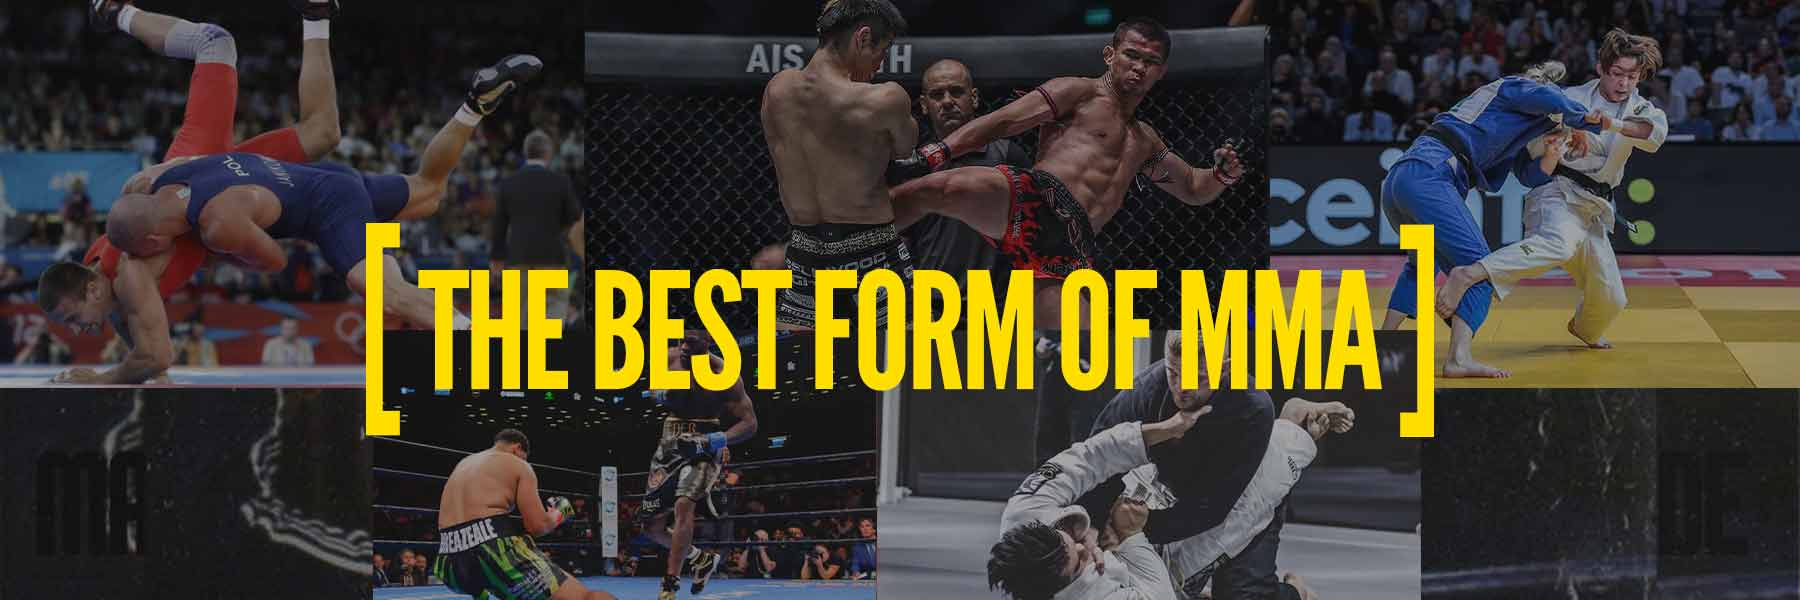 What is the best form of MMA?